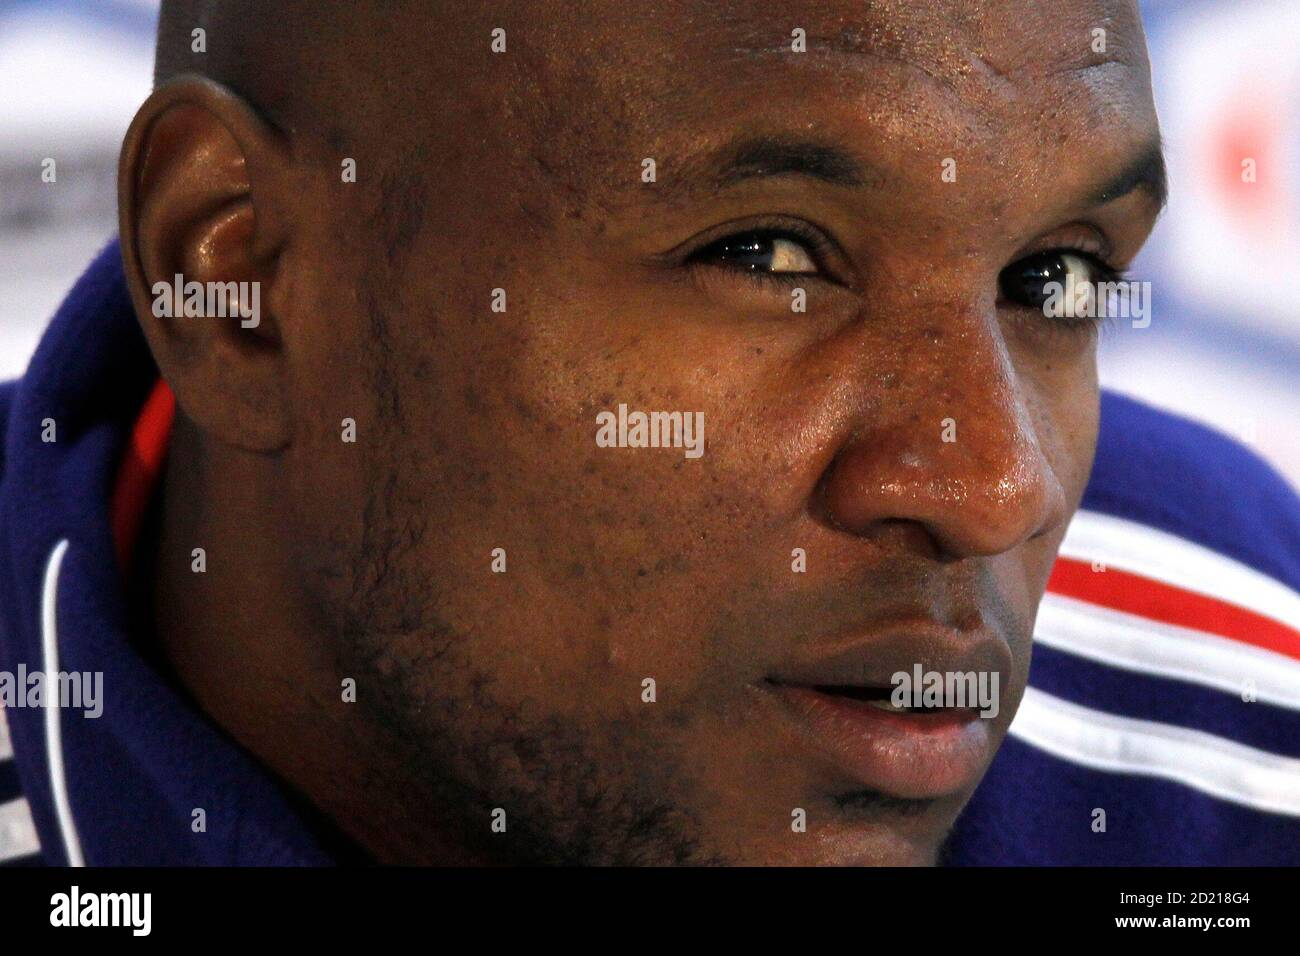 France's national soccer team player Eric Abidal attends a news conference in Knysna, near Cape Town June 13, 2010. REUTERS/Charles Platiau (SOUTH AFRICA - Tags: SPORT SOCCER WORLD CUP HEADSHOT) Stock Photo